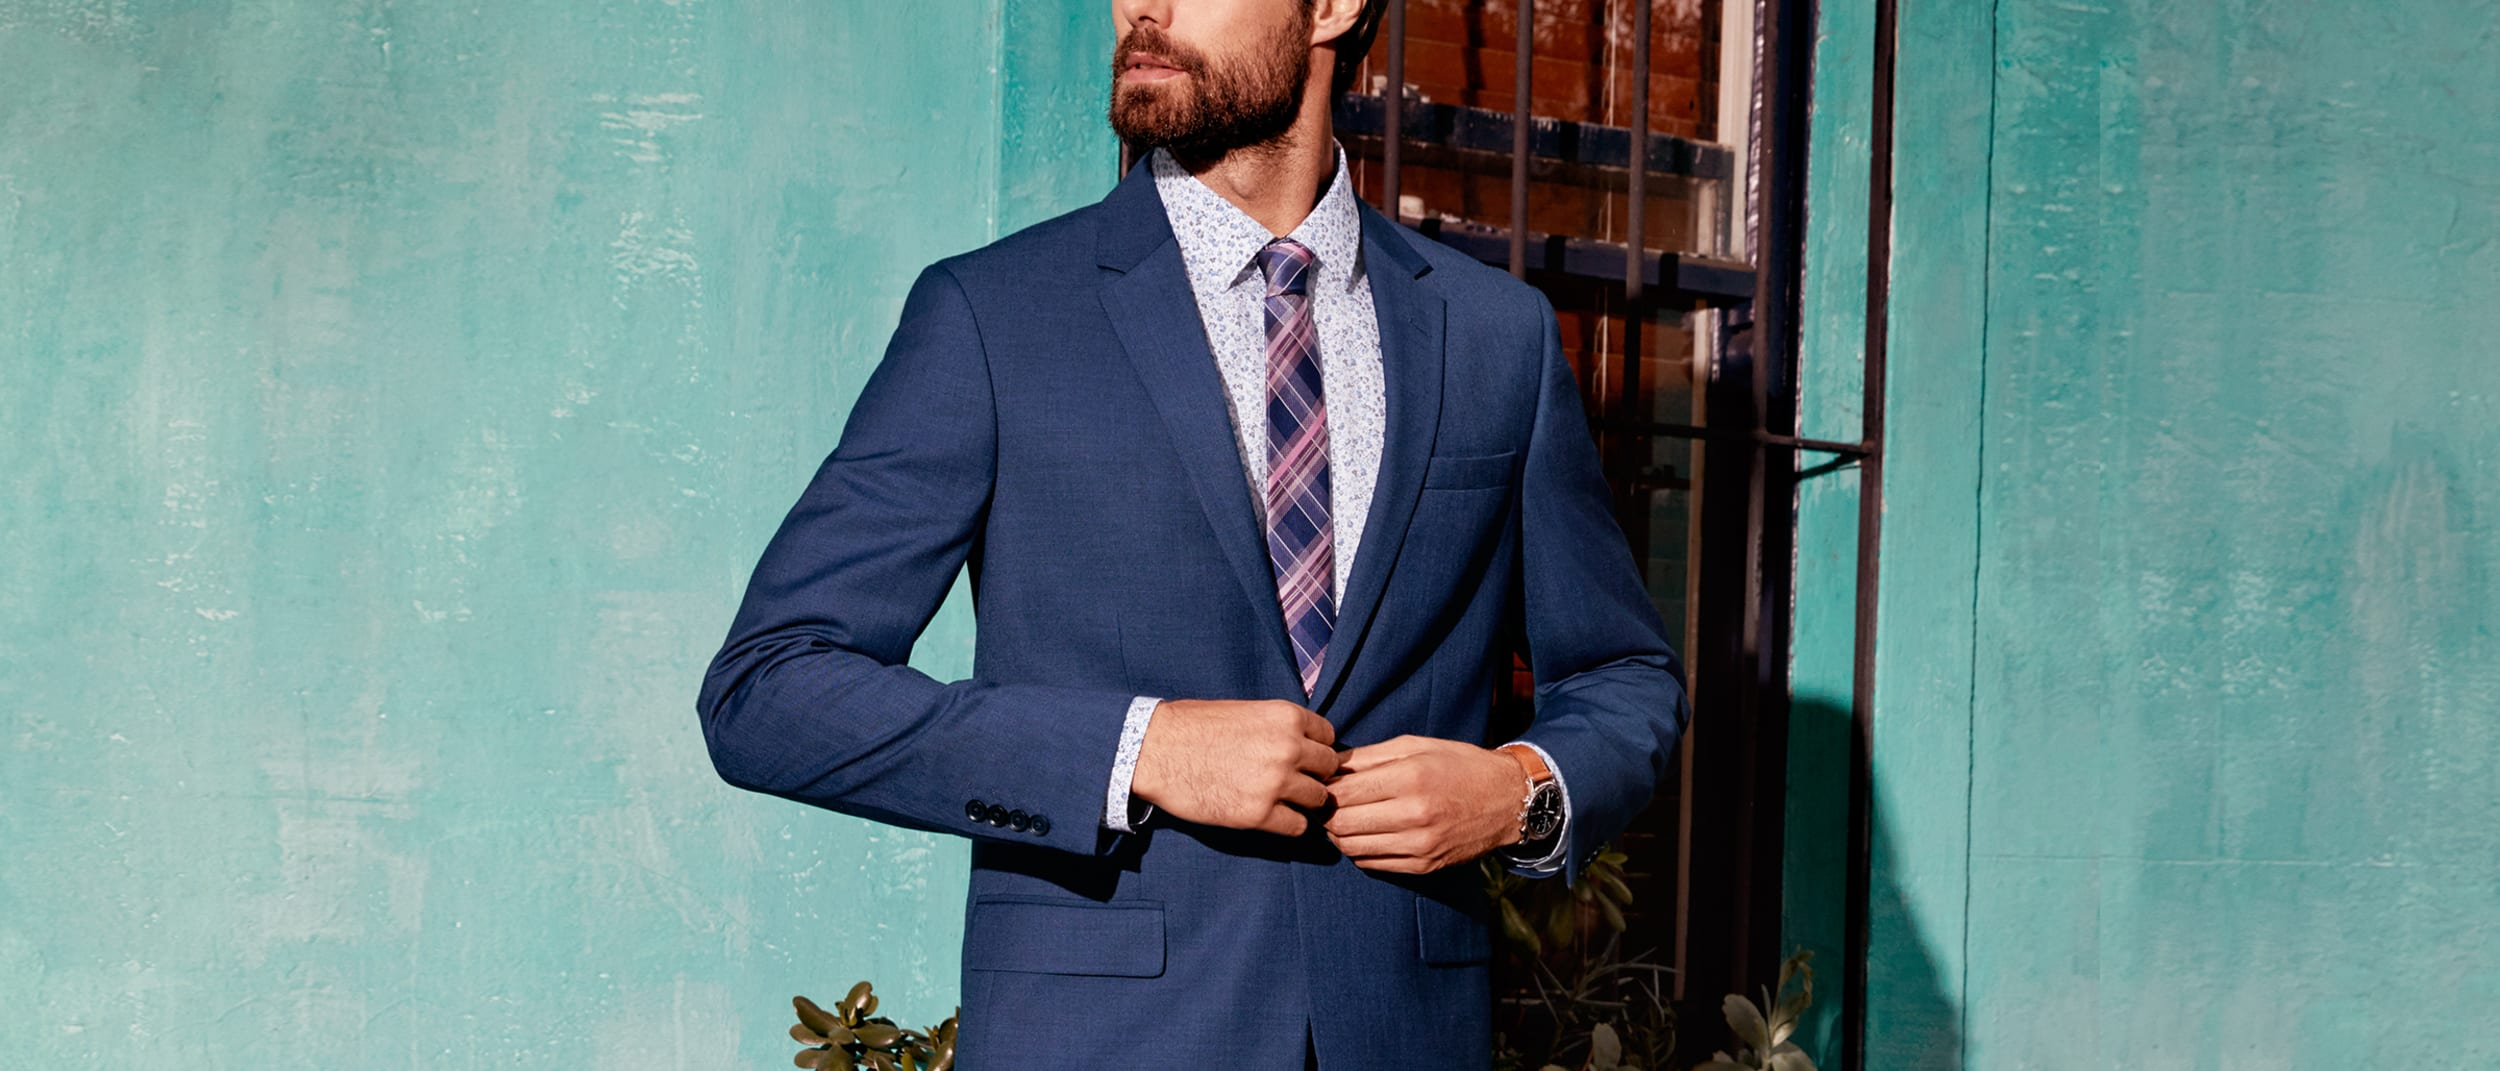 Tarocash: suit, shirt and tie now $249.99, save $150